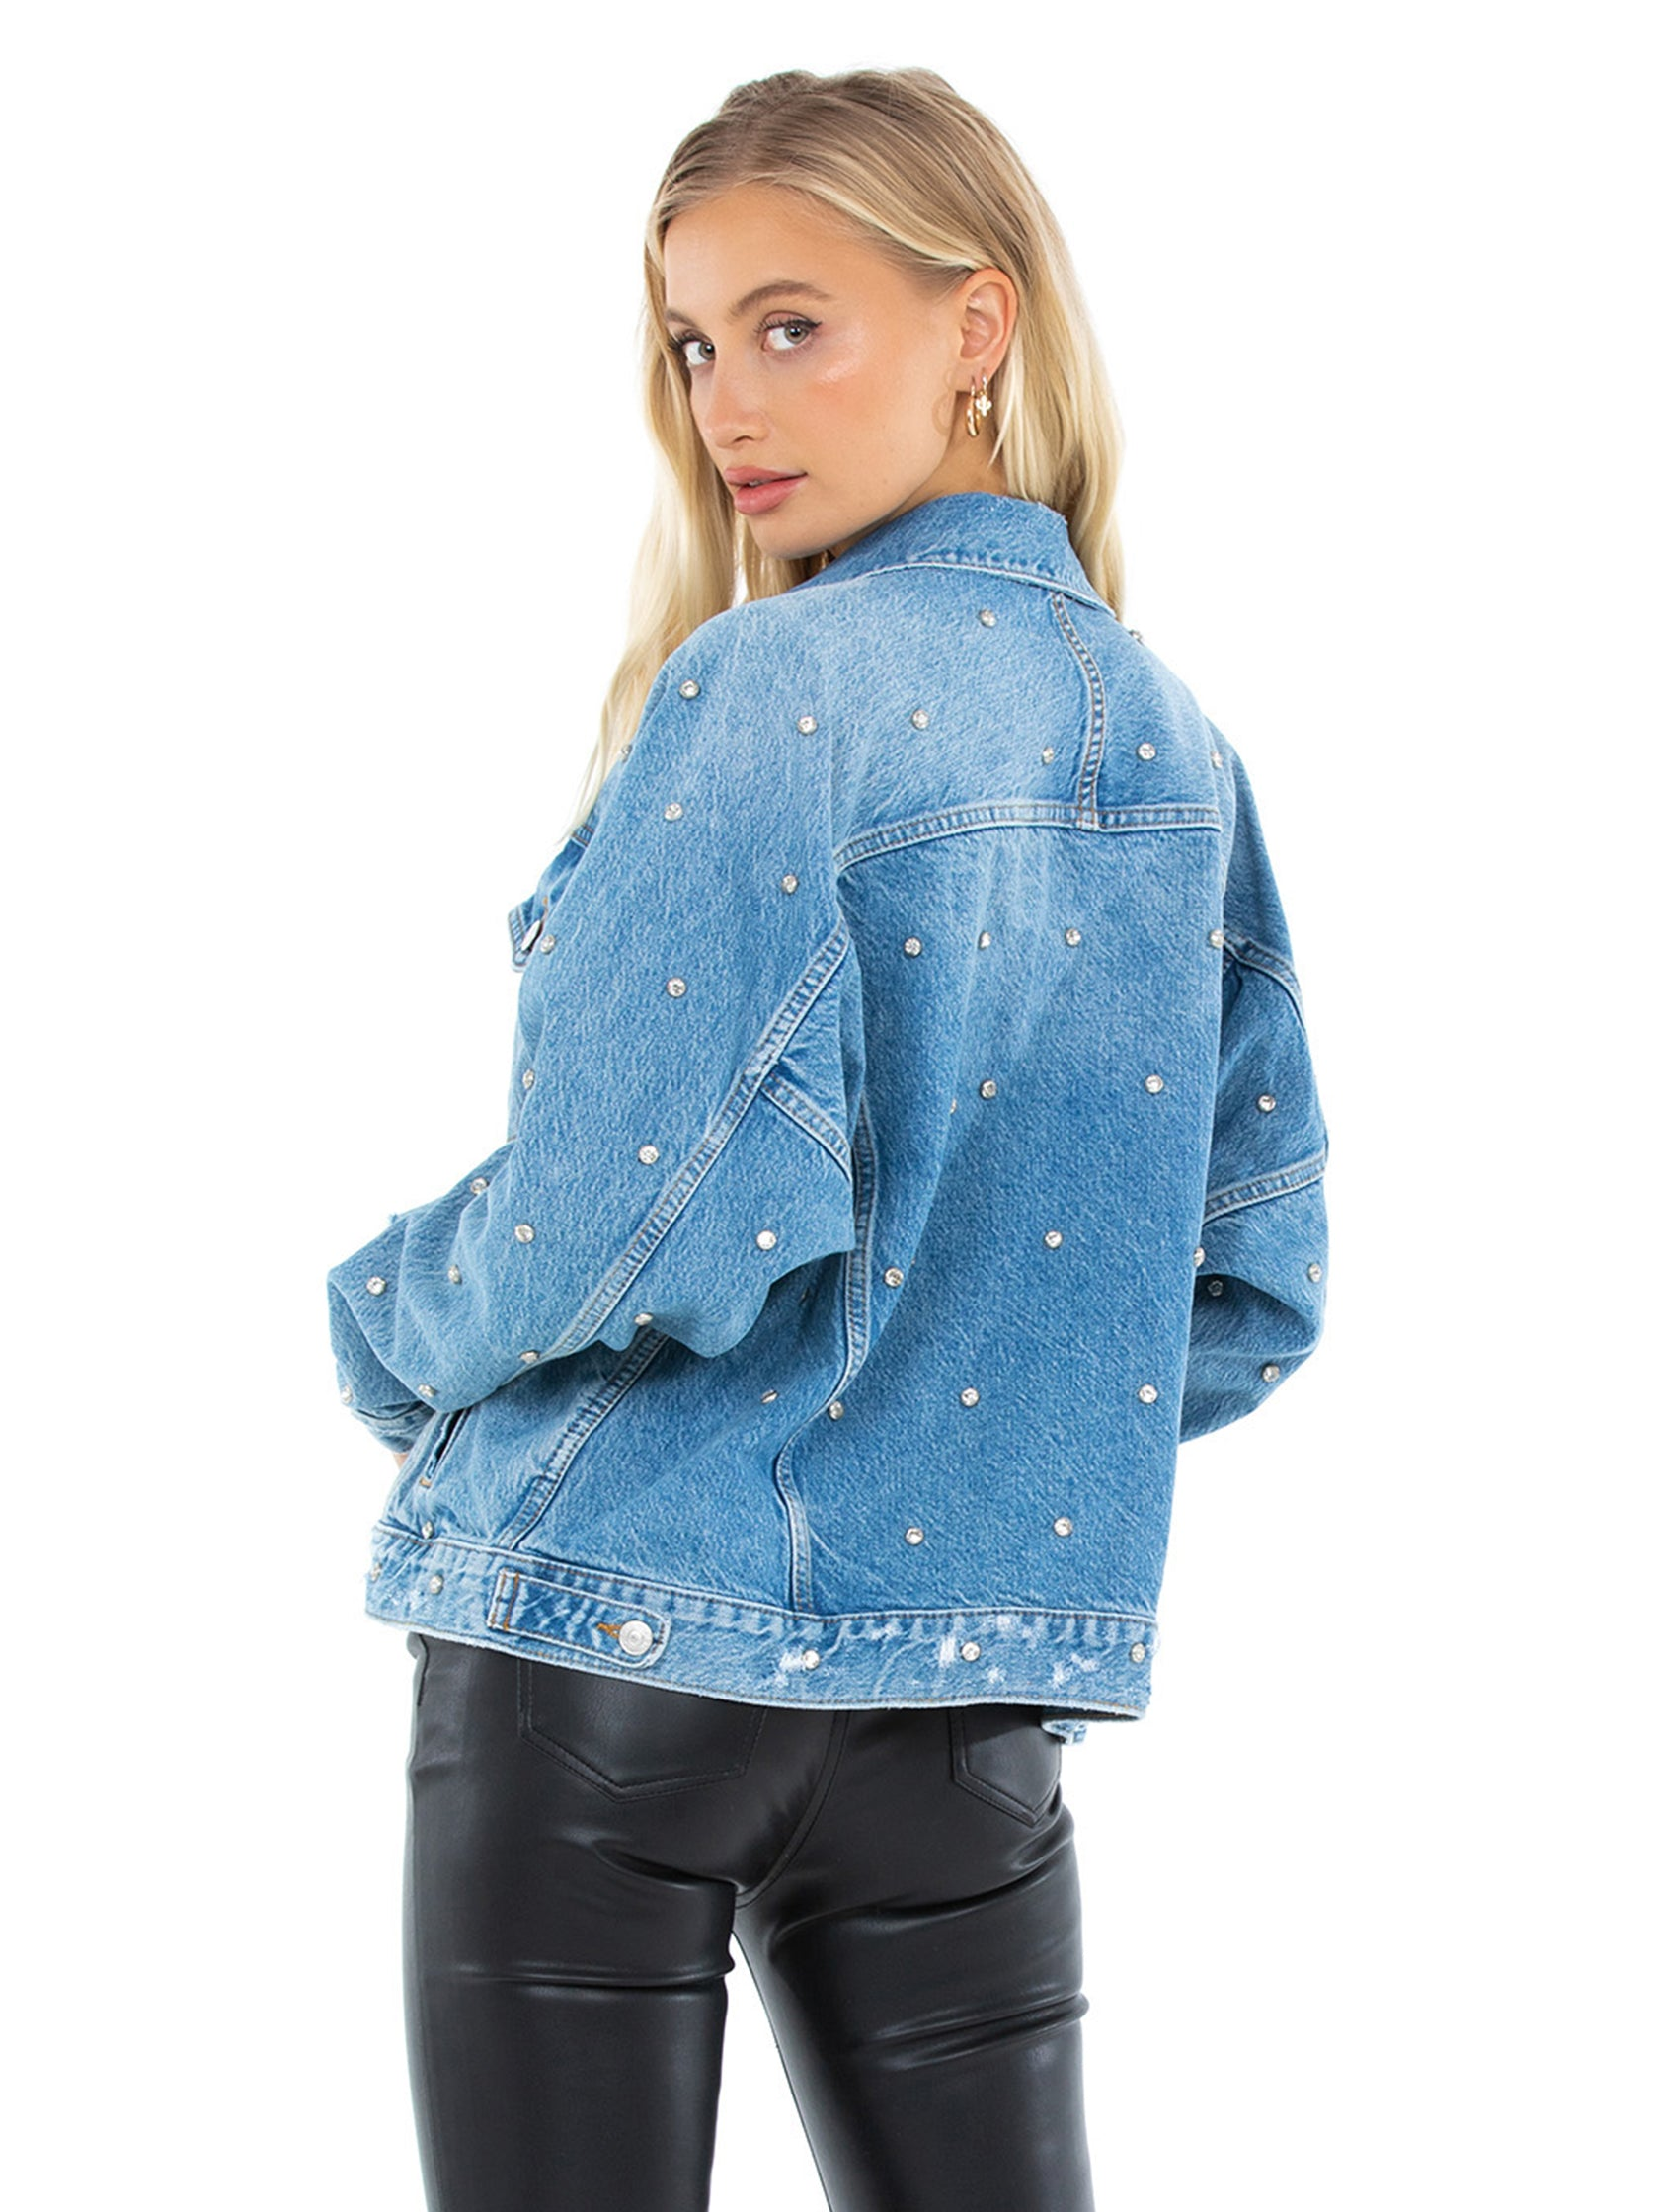 Women outfit in a jacket rental from Free People called Night After Night Denim Jacket